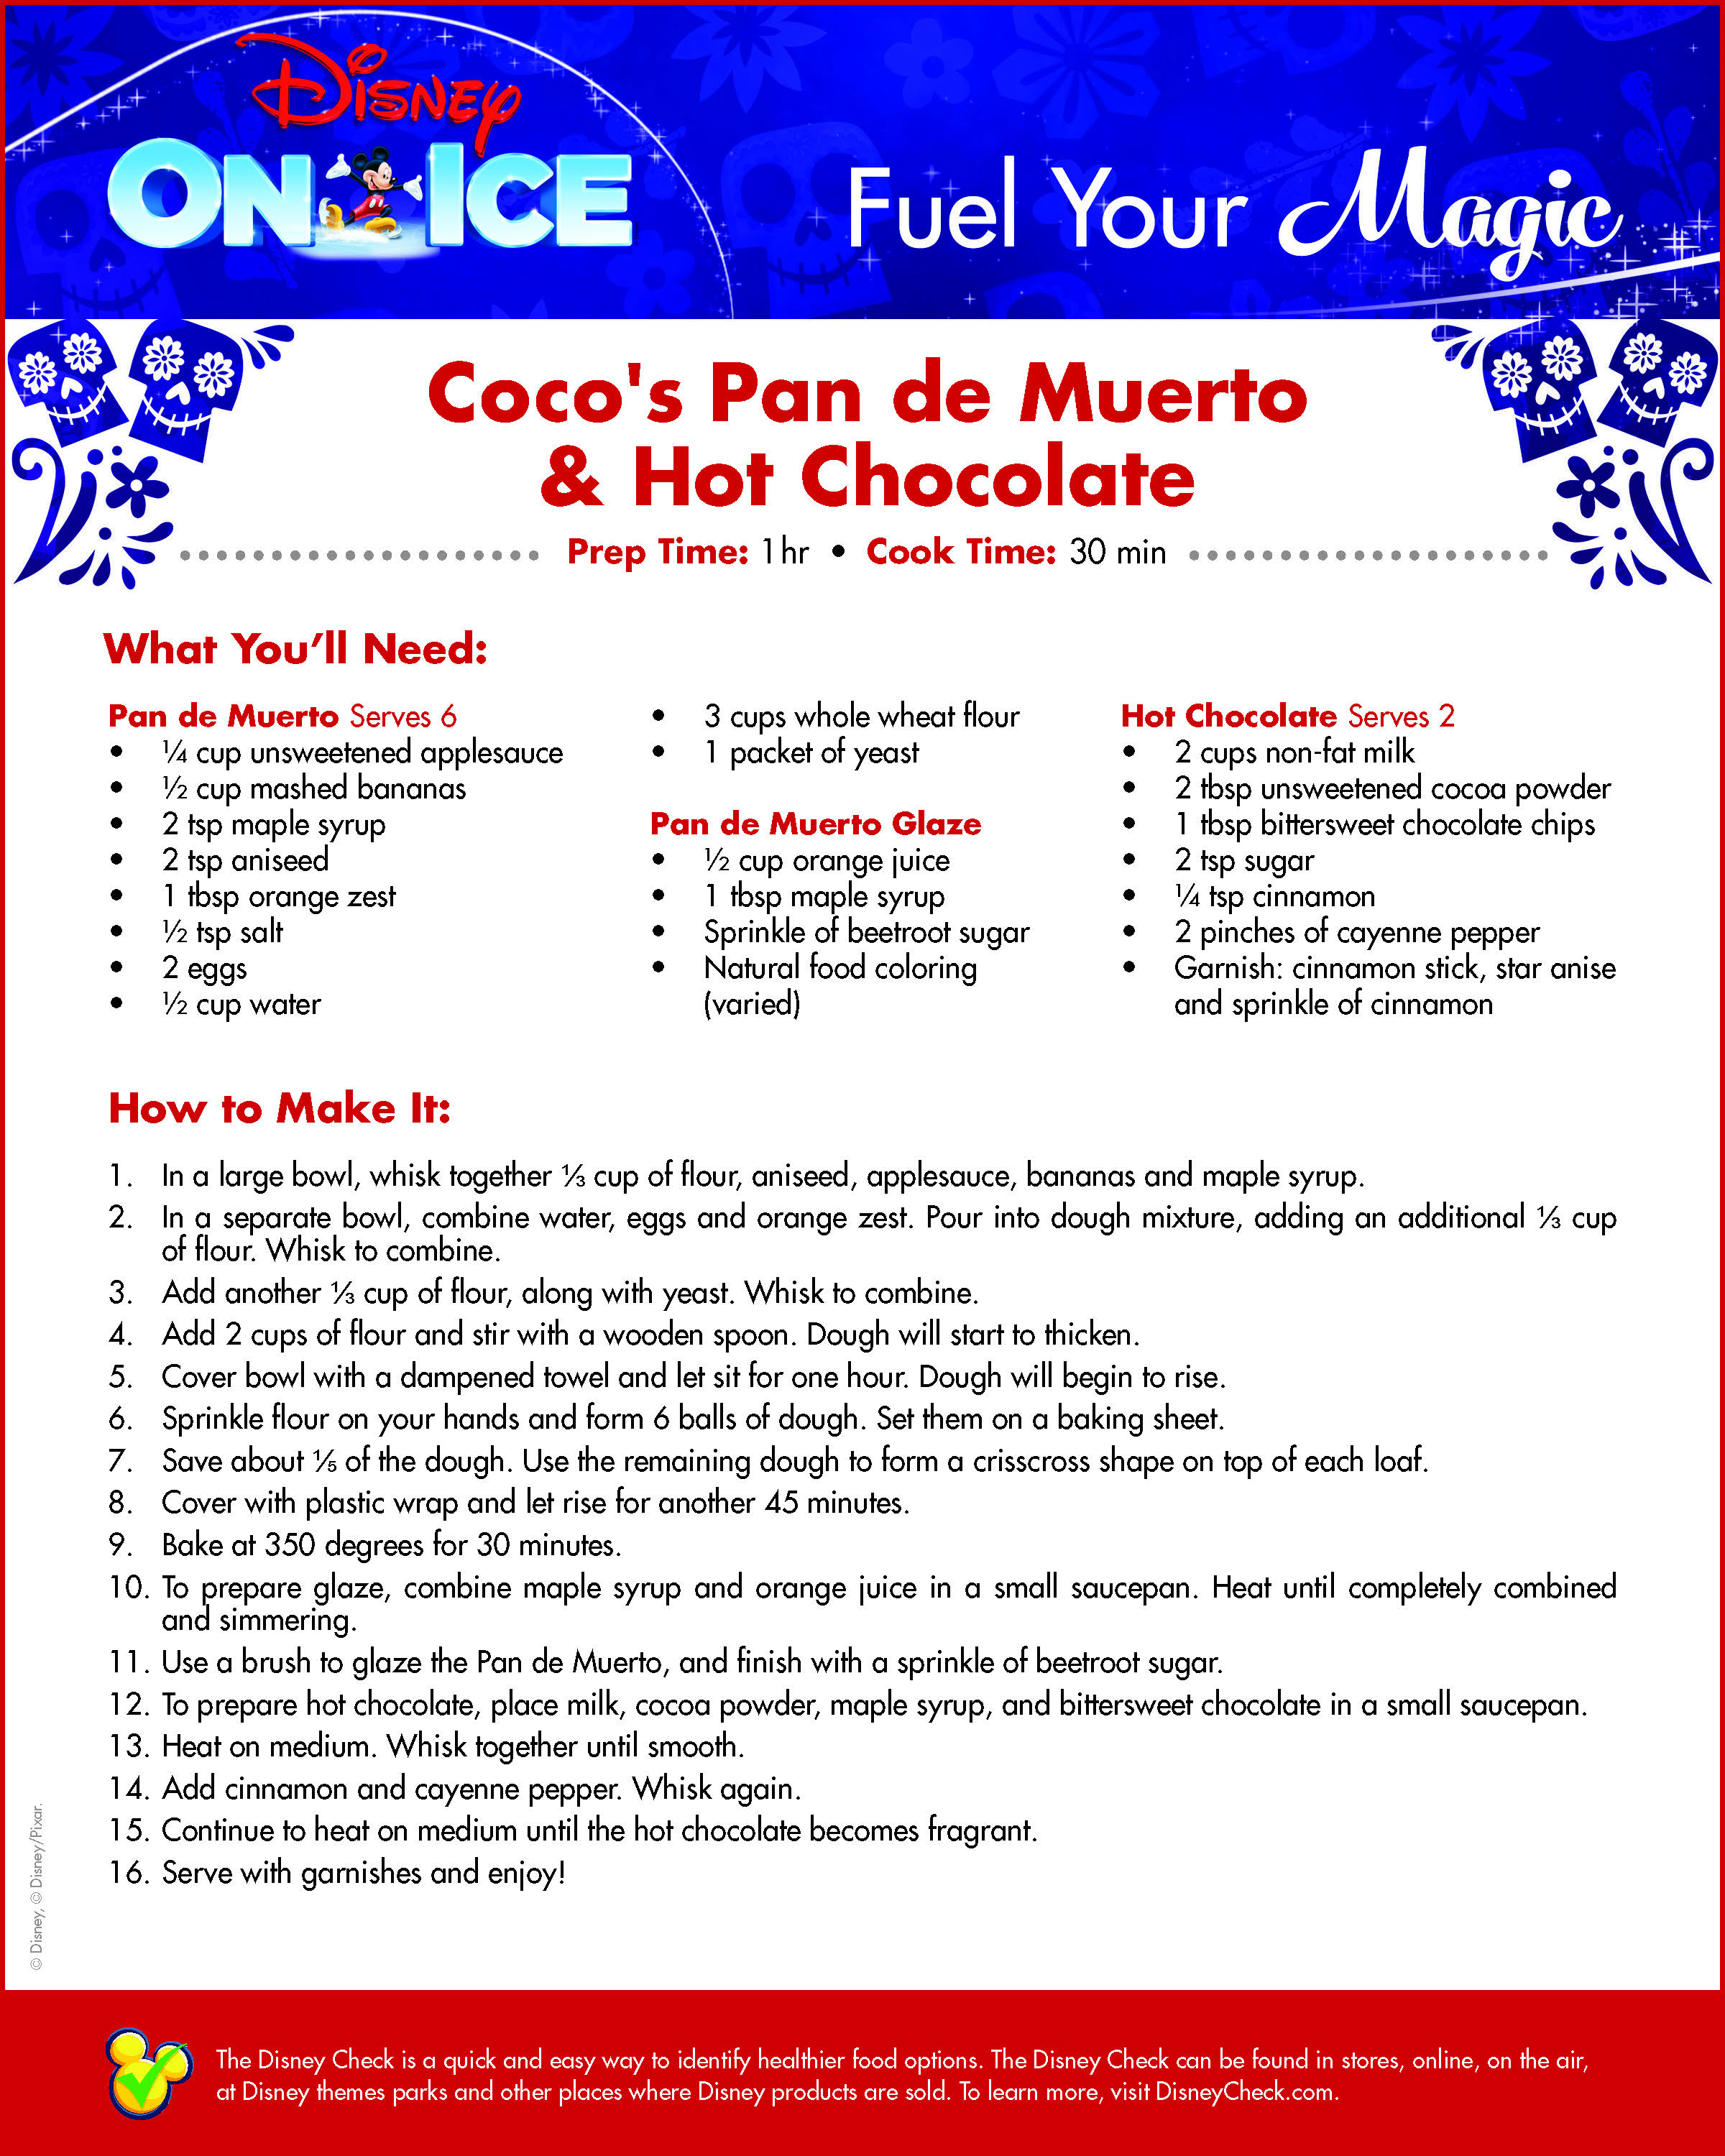 Coco's Pan de Muerto & Hot Chocolate